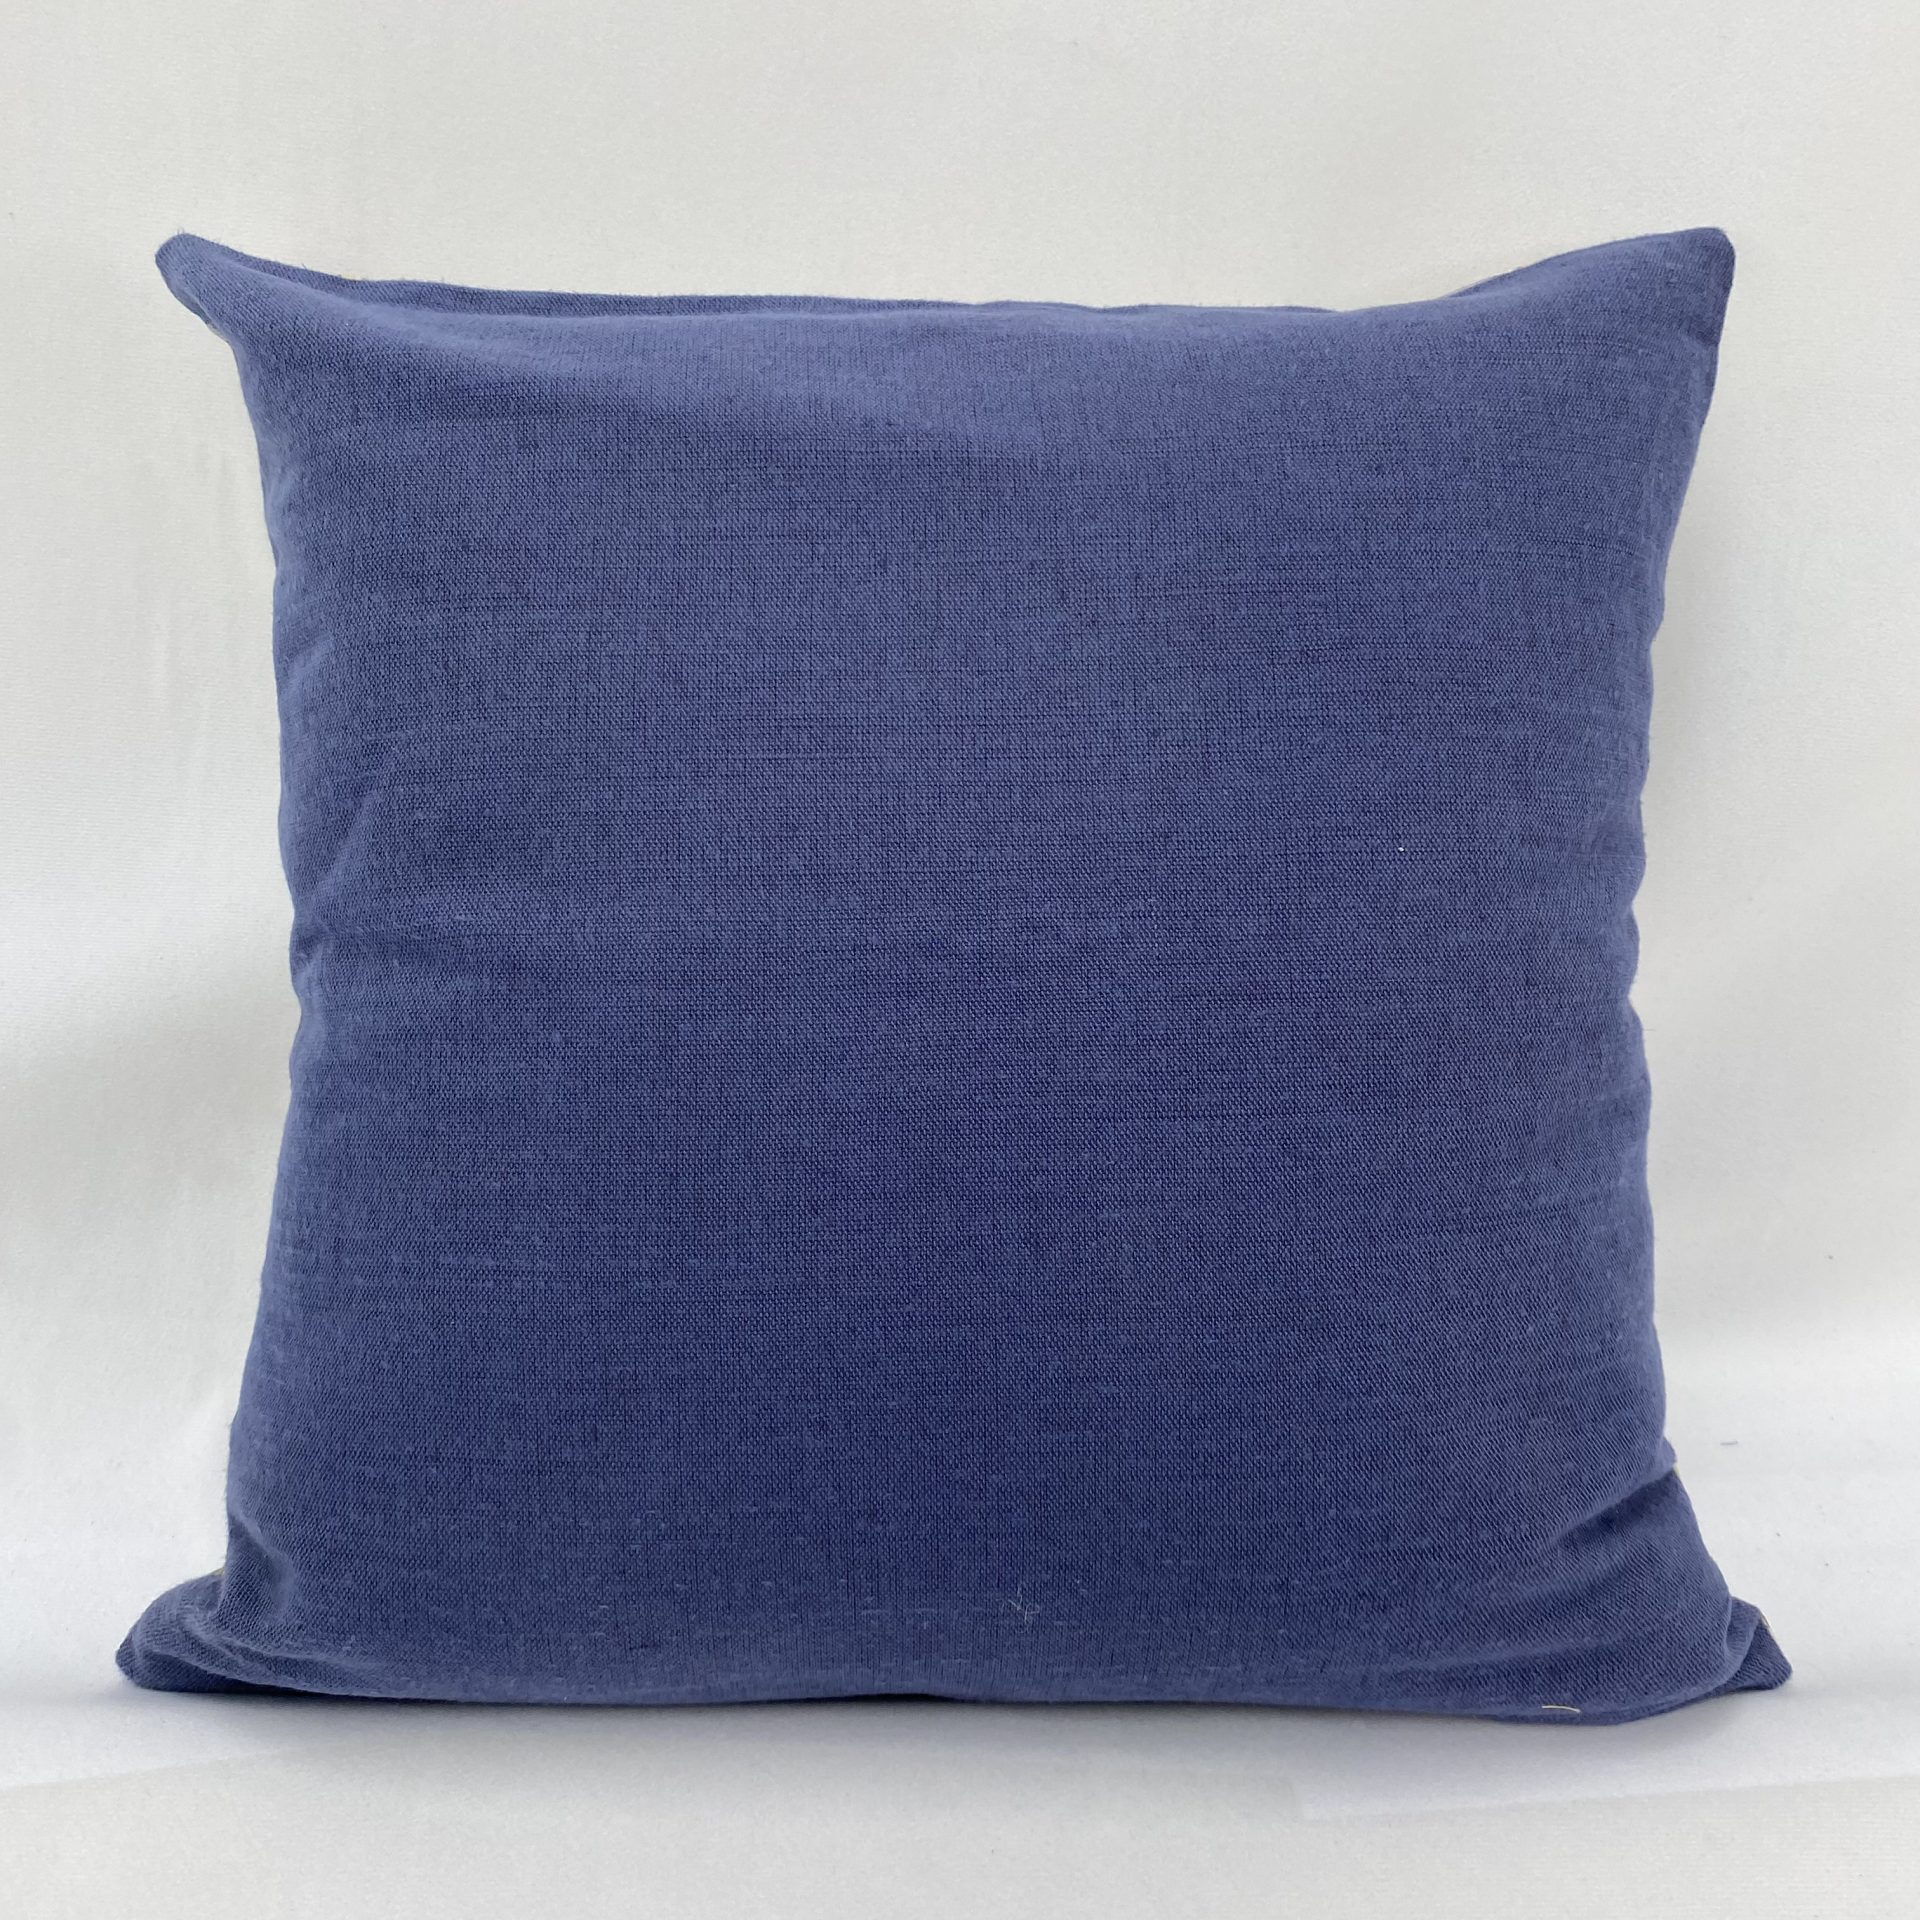 Linen cotton blended cushion cover by Paul Bristow's